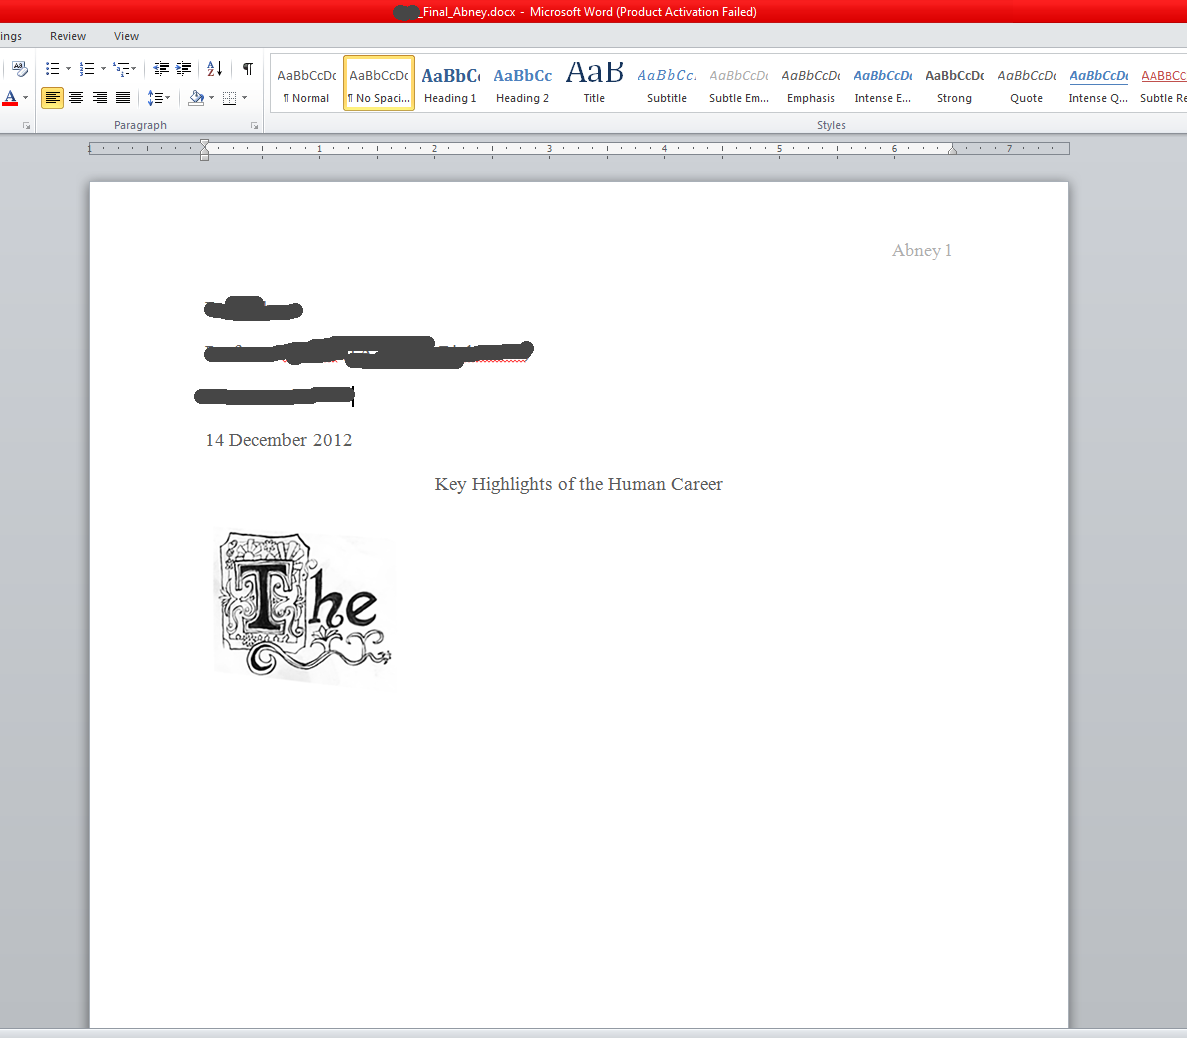 005 Spongebob The Essay Font Example Procrastination How To Beat Critical On Episode Top Google Docs Copy And Paste Name Full